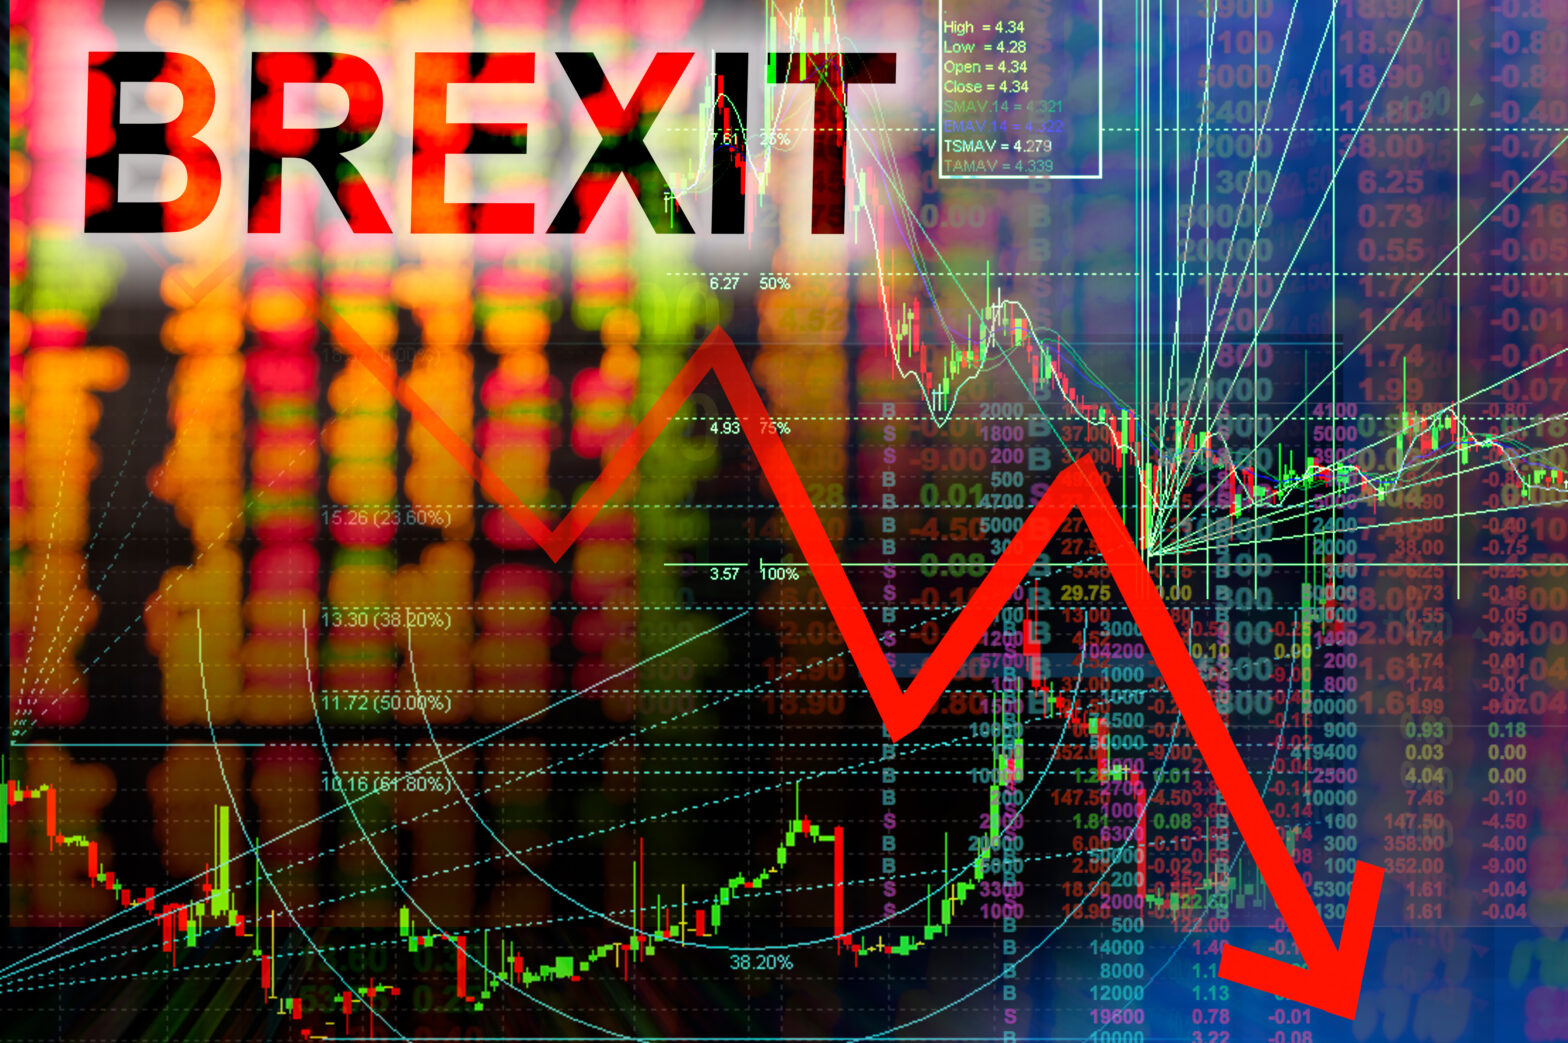 Brexit with graph